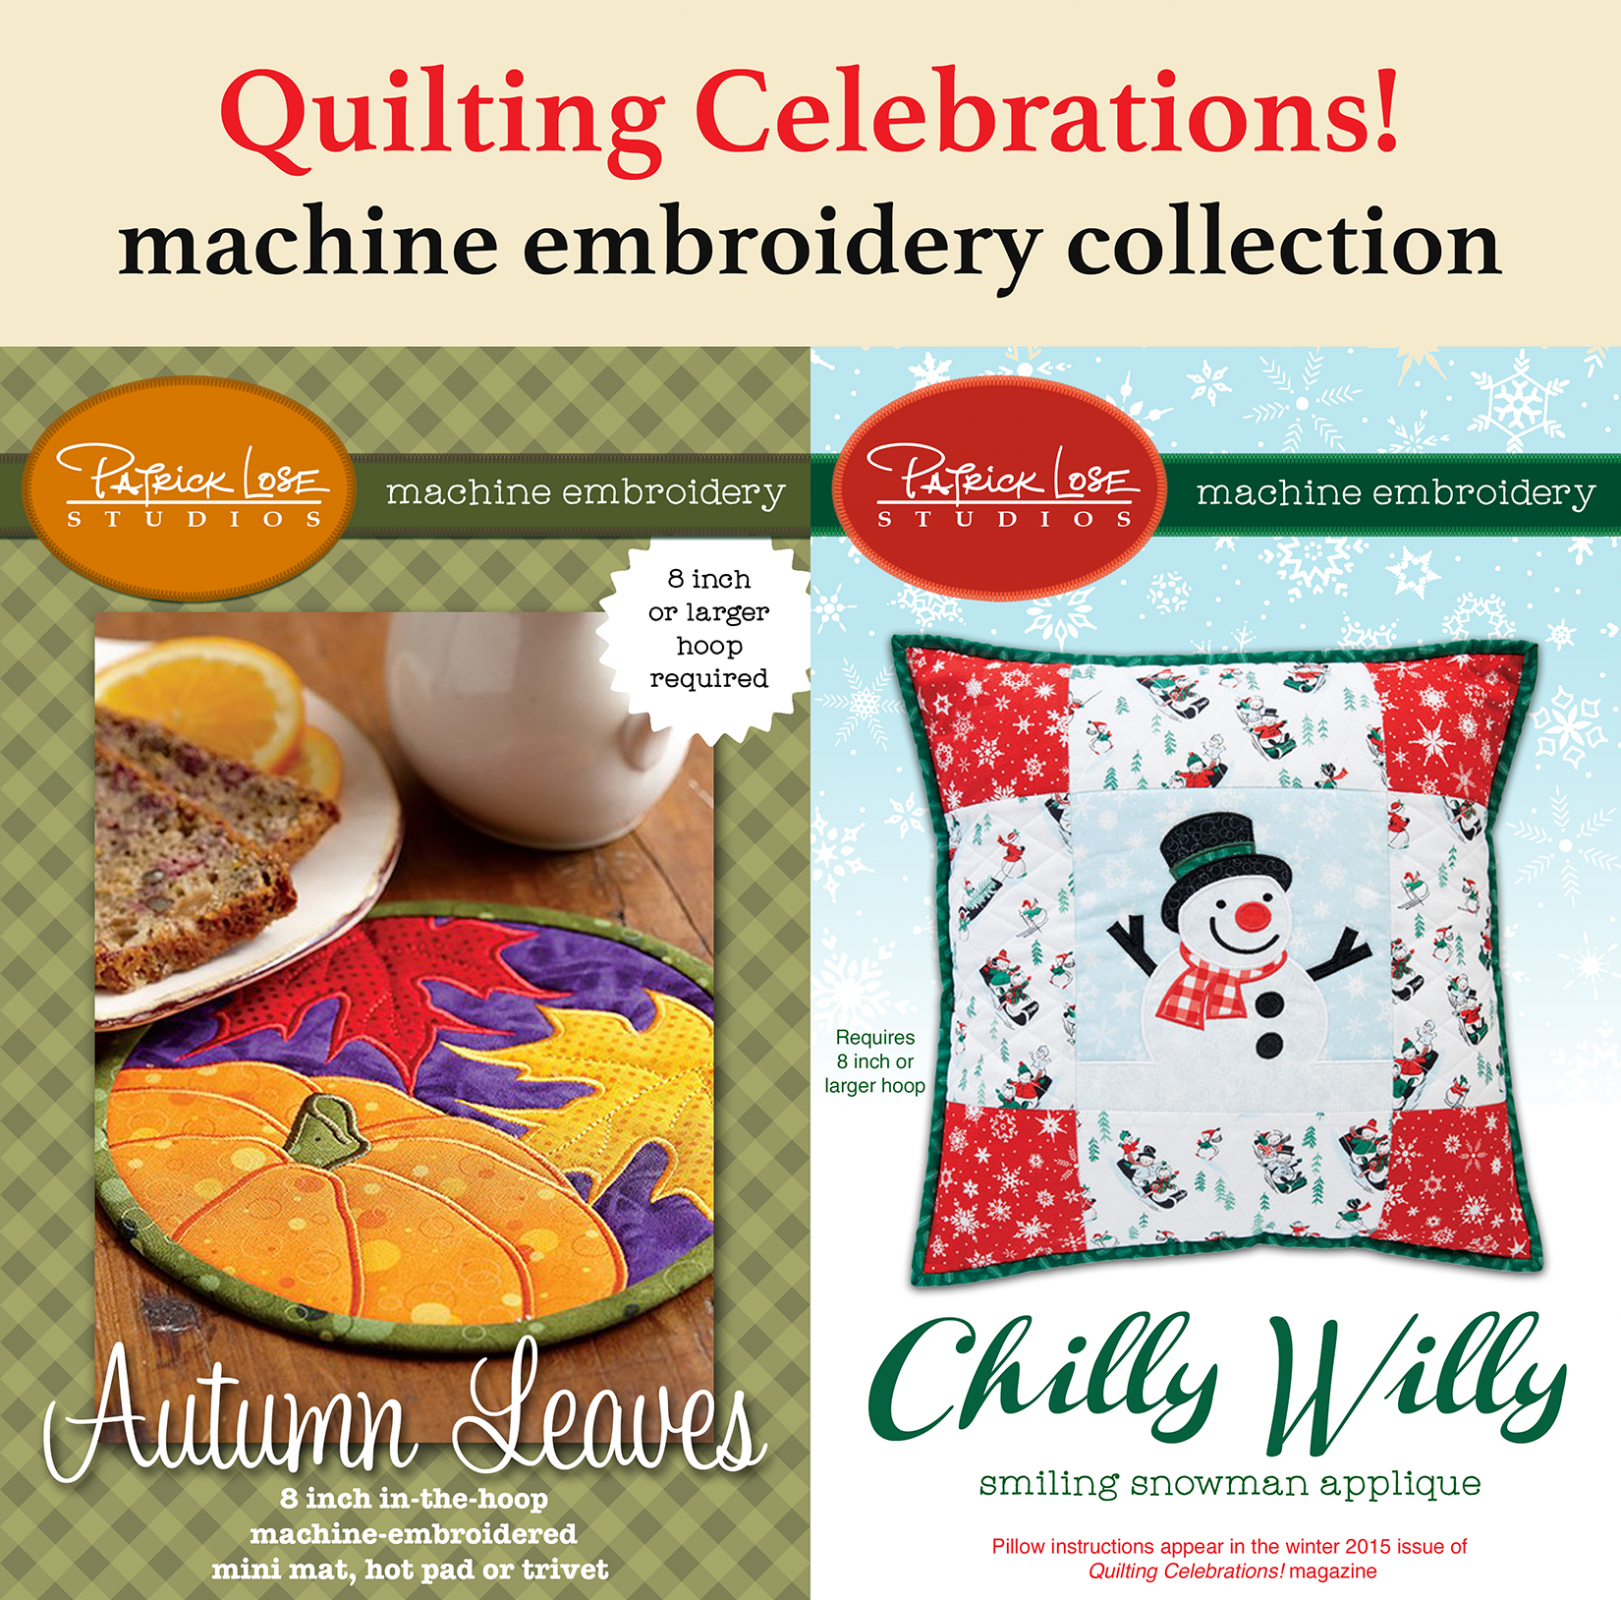 Quilting Celebrations branded USB collection SALE - more than 60% off!